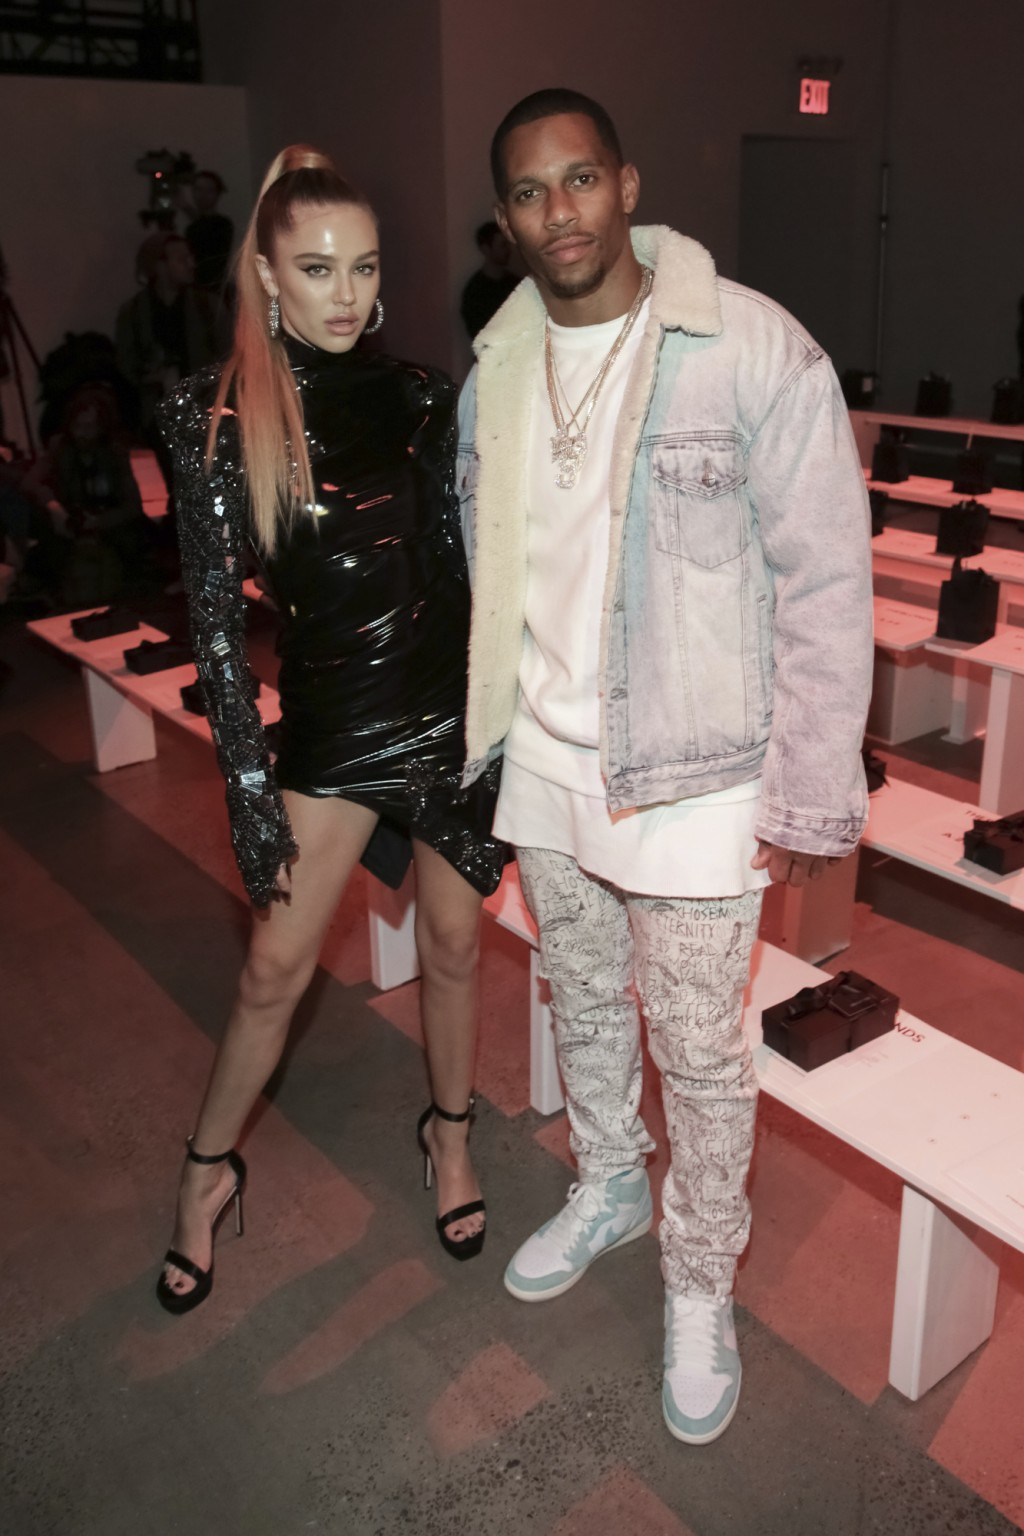 Delilah Belle Hamlin, left, and Victor Cruz attend The Blonds Runway Show held at Spring Studios during New York Fashion Week on Tuesday, Feb. 12, 201